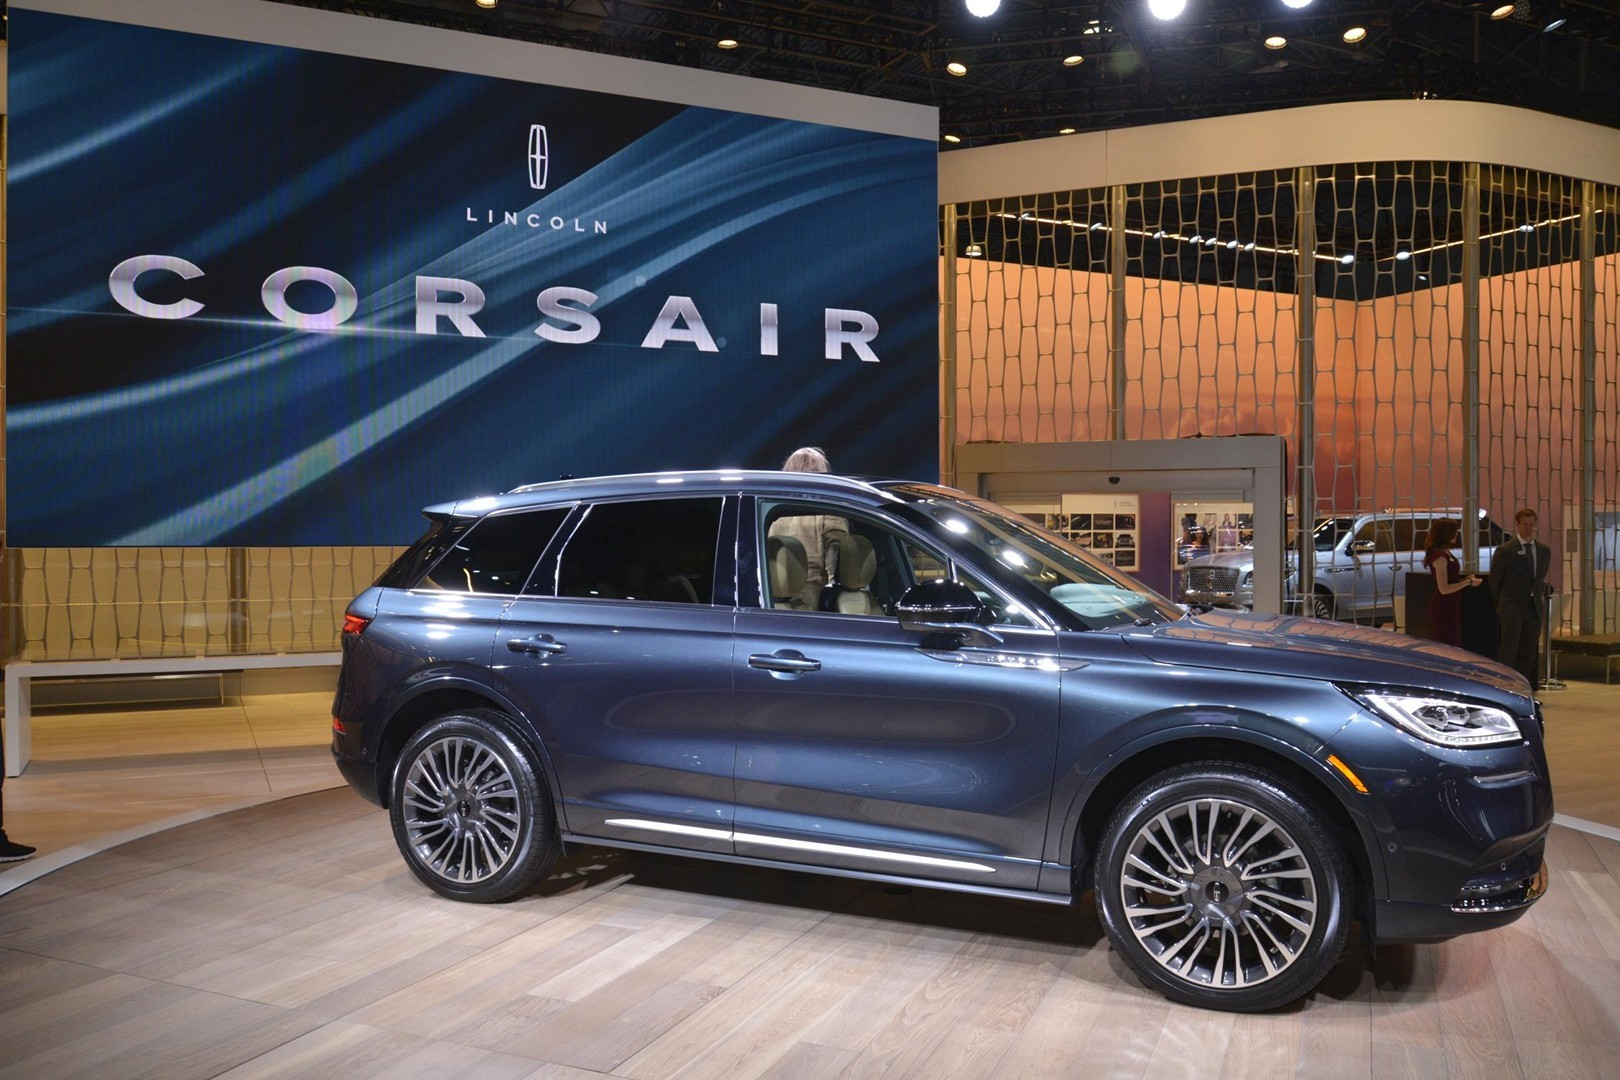 2020 Corsair Debuts as Lincoln's Smallest SUV, Shares New ...